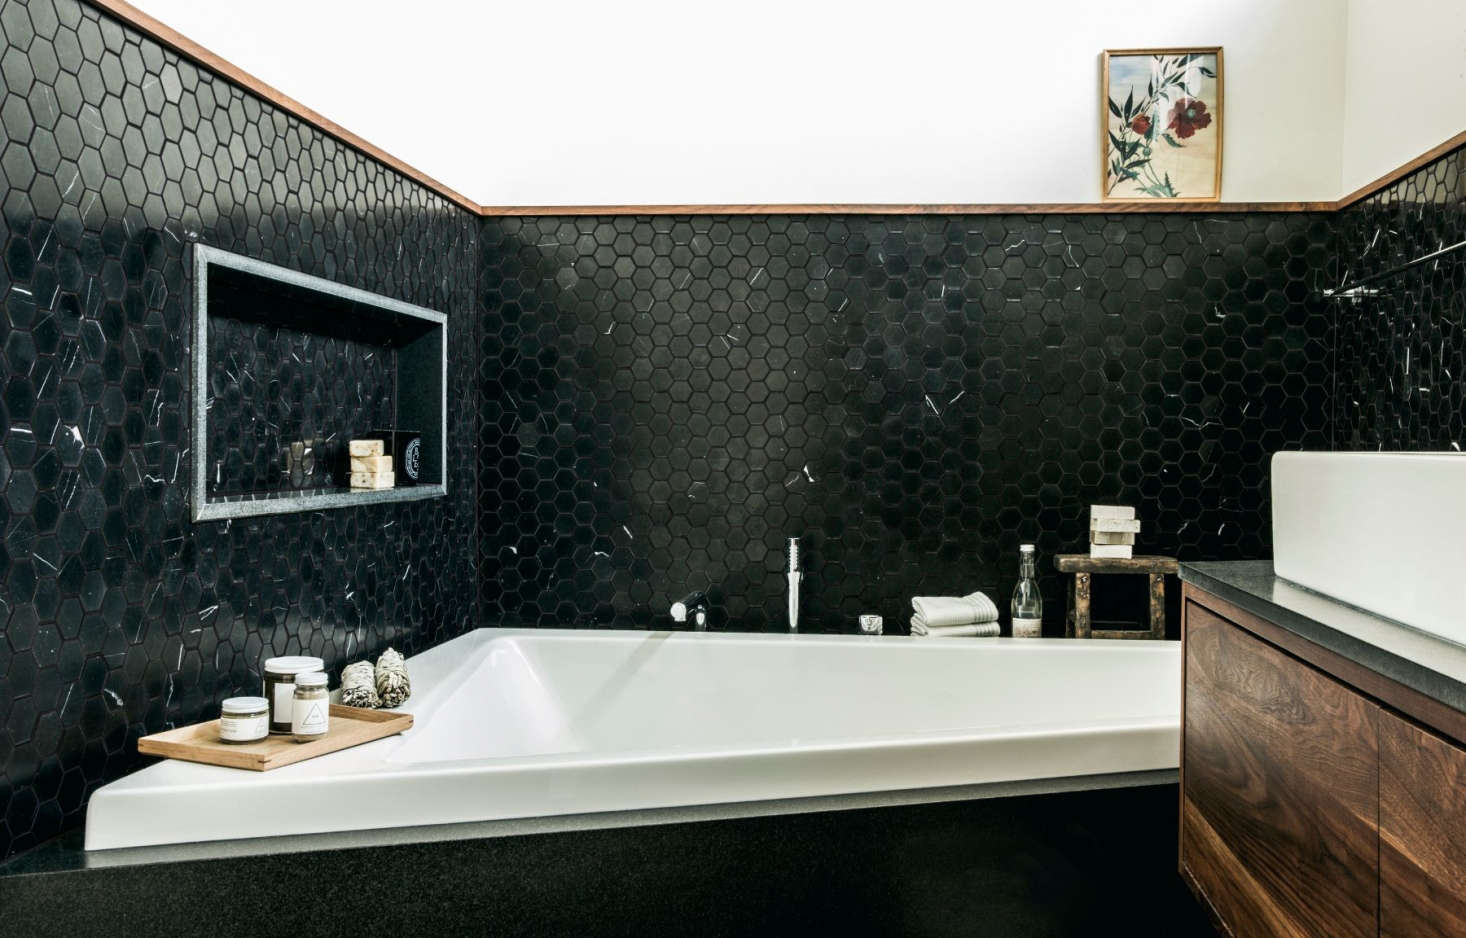 In this San Francisco project—another submission to the Remodelista Considered Design Awards— designersLynn K. Leonidasand Andrea Faucettused black granite slab for the bathtub niche and Nero Marquina marble hex tile from Ann Sacks for the surround. Photograph byAubrie Prick, courtesy of Lynn K. Leonidas.